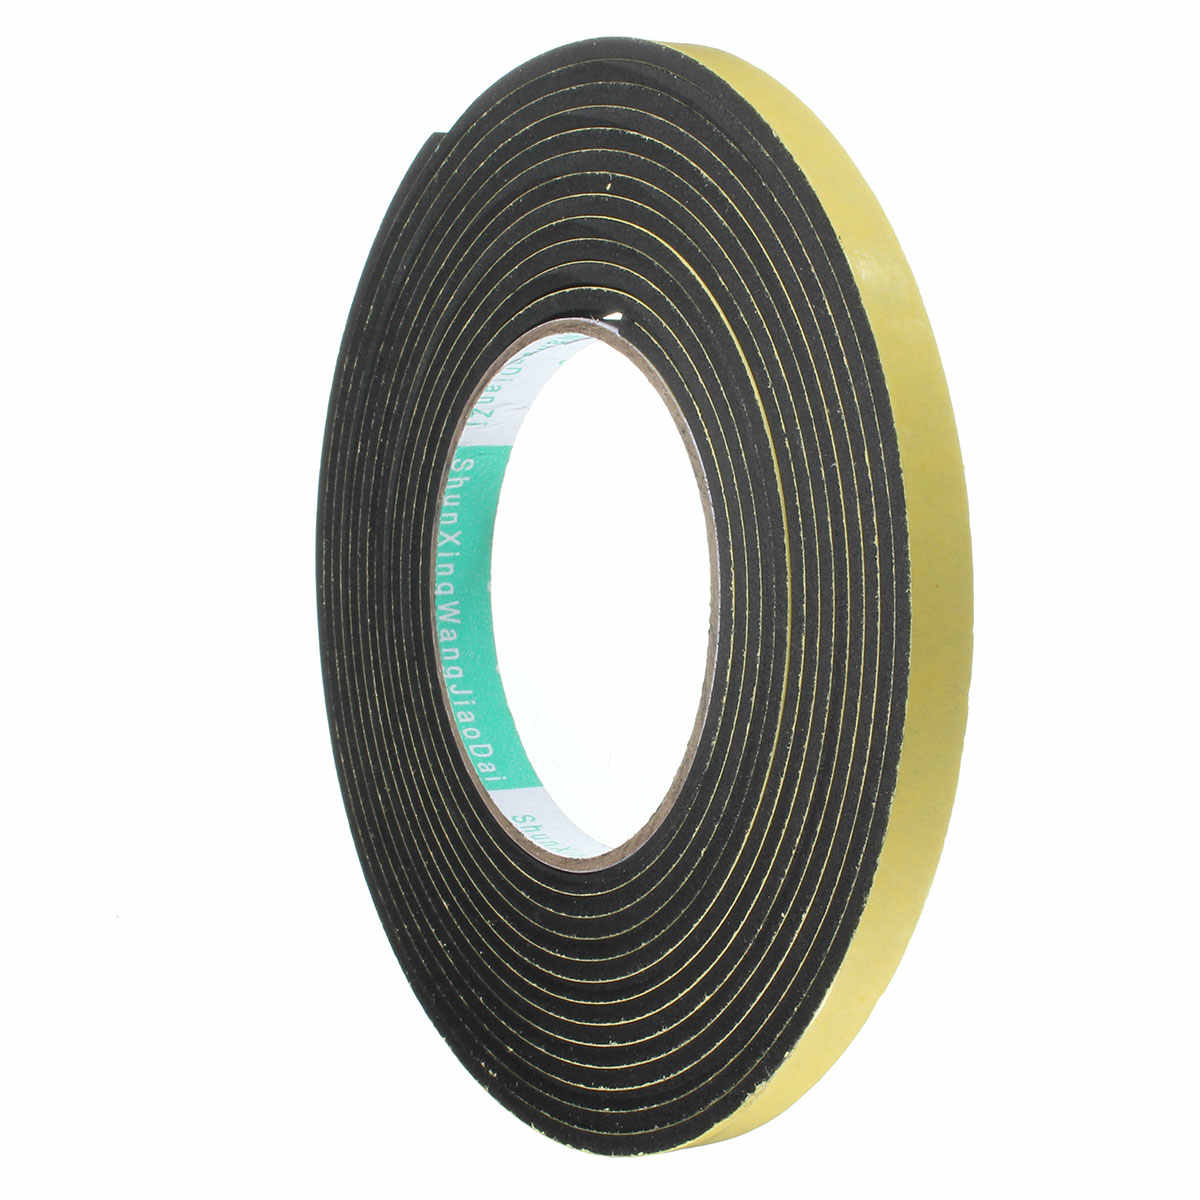 Newest 5m x 3x10mm Single Sided Adhesive Waterproof Weather Stripping Foam Sponge Rubber Strip Tape Door Seal Promotion Price